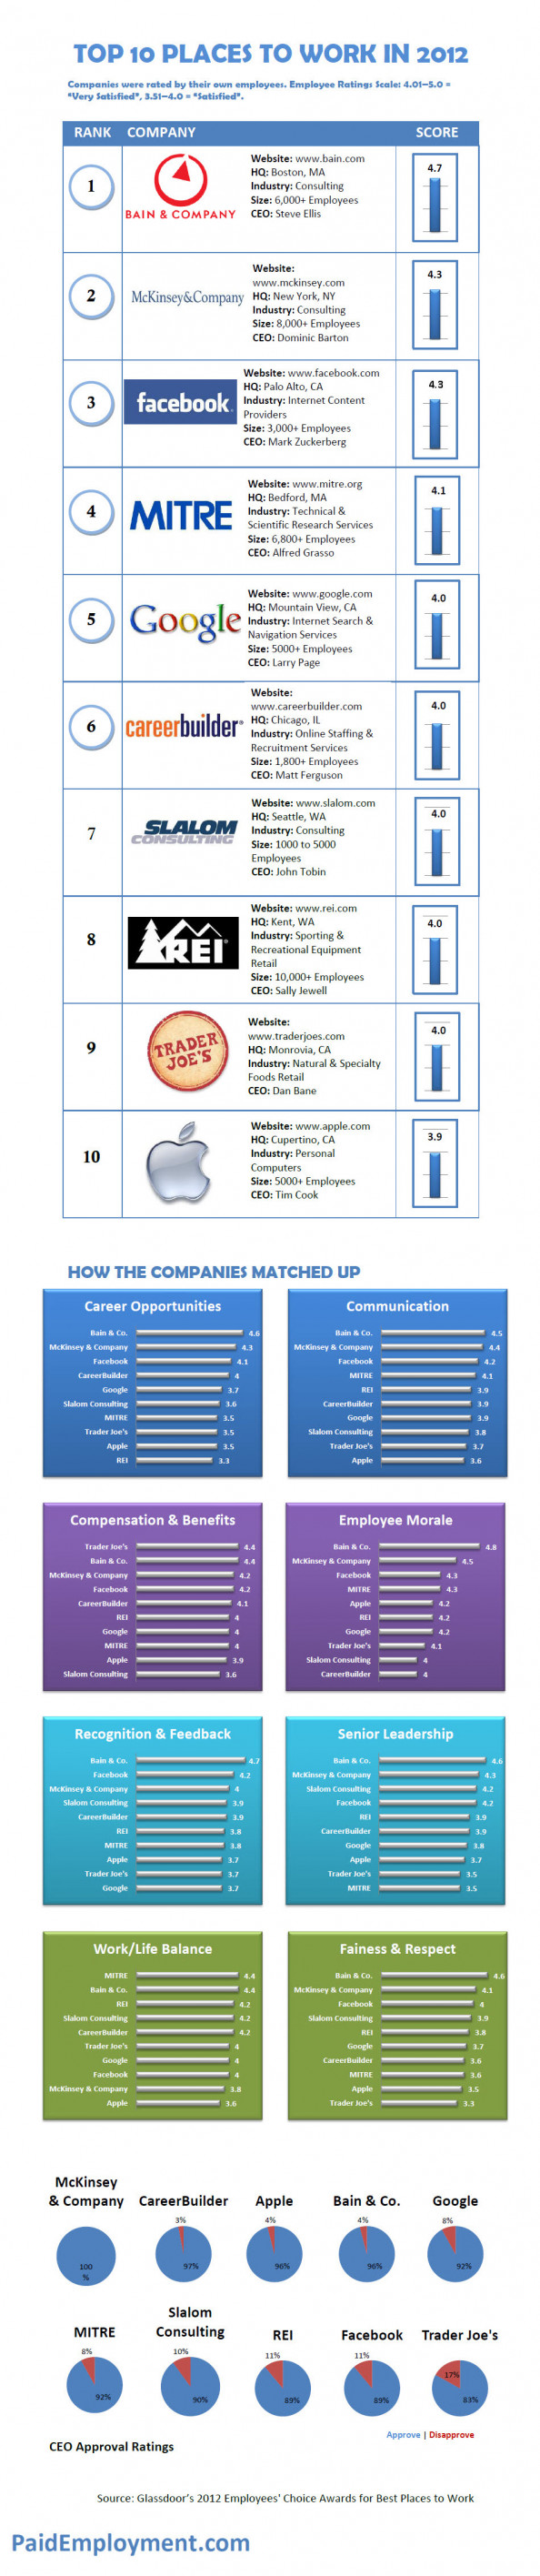 Top 10 Places to Work for 2012 Infographic